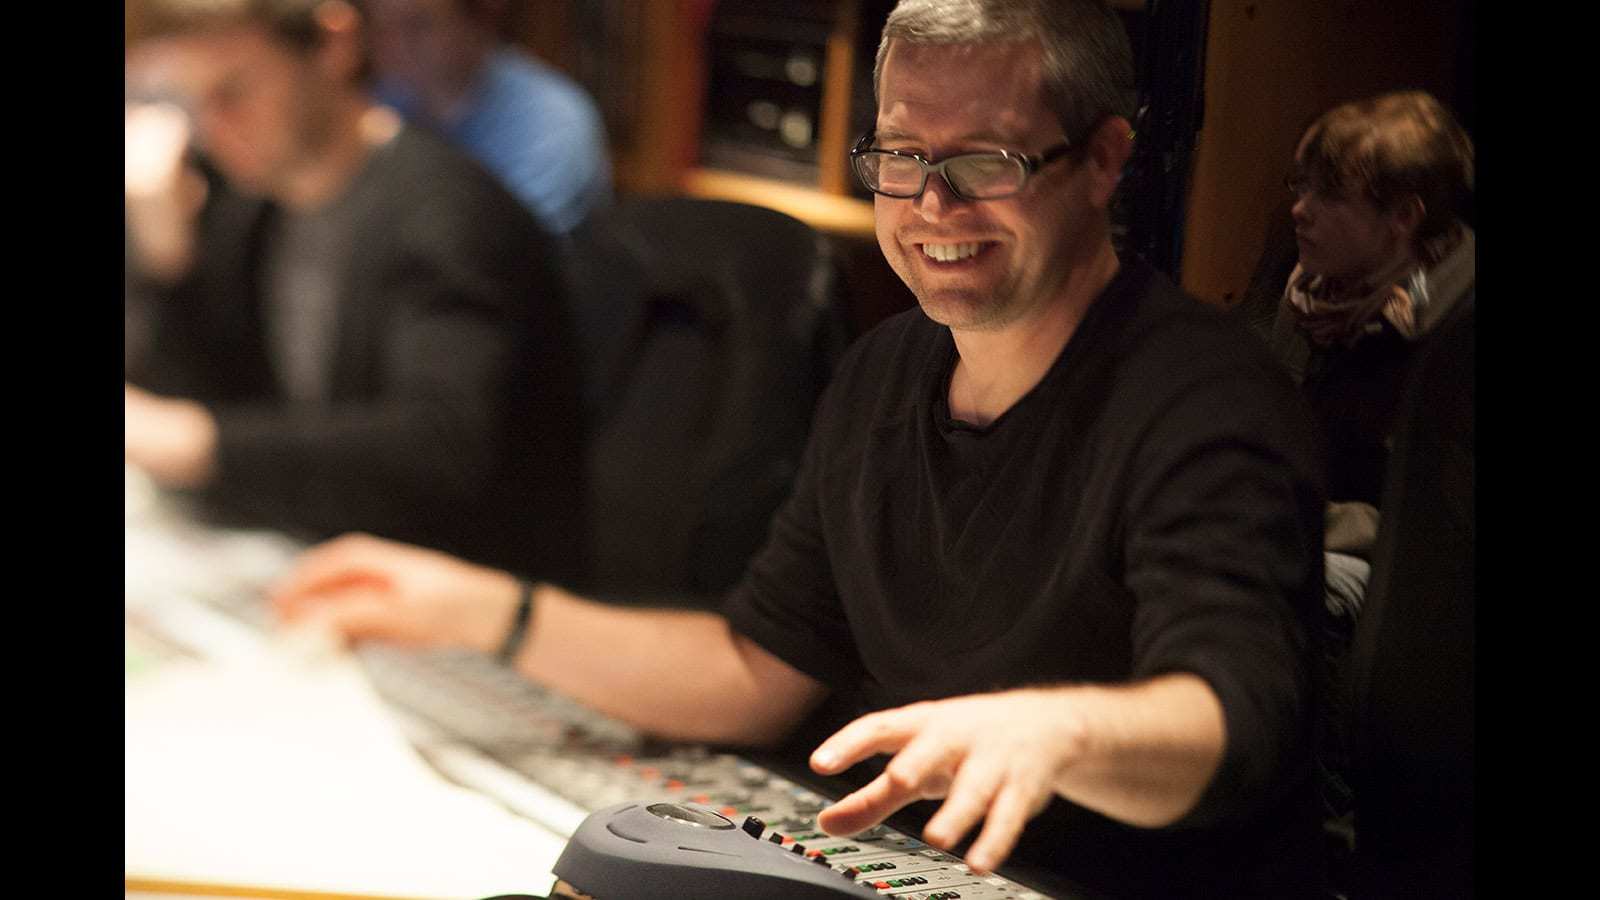 Film composer John Powell at work